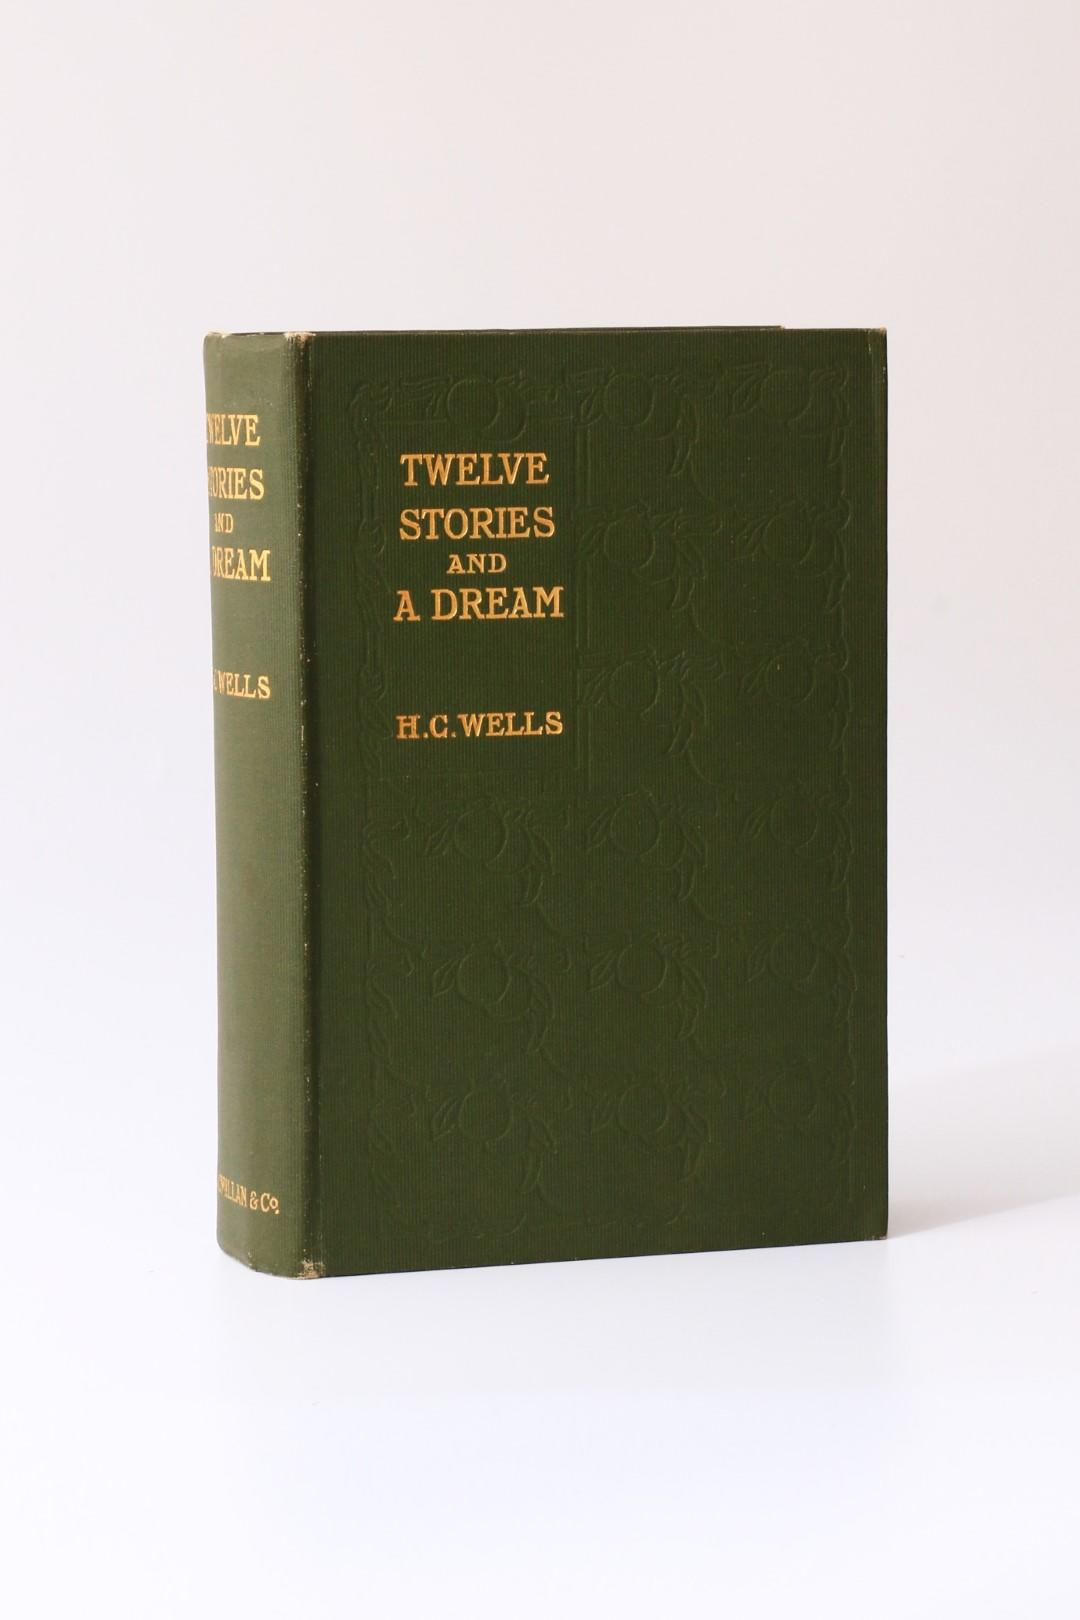 H.G. Wells - Twelve Stories and A Dream - MacMillan, 1903, First Edition.